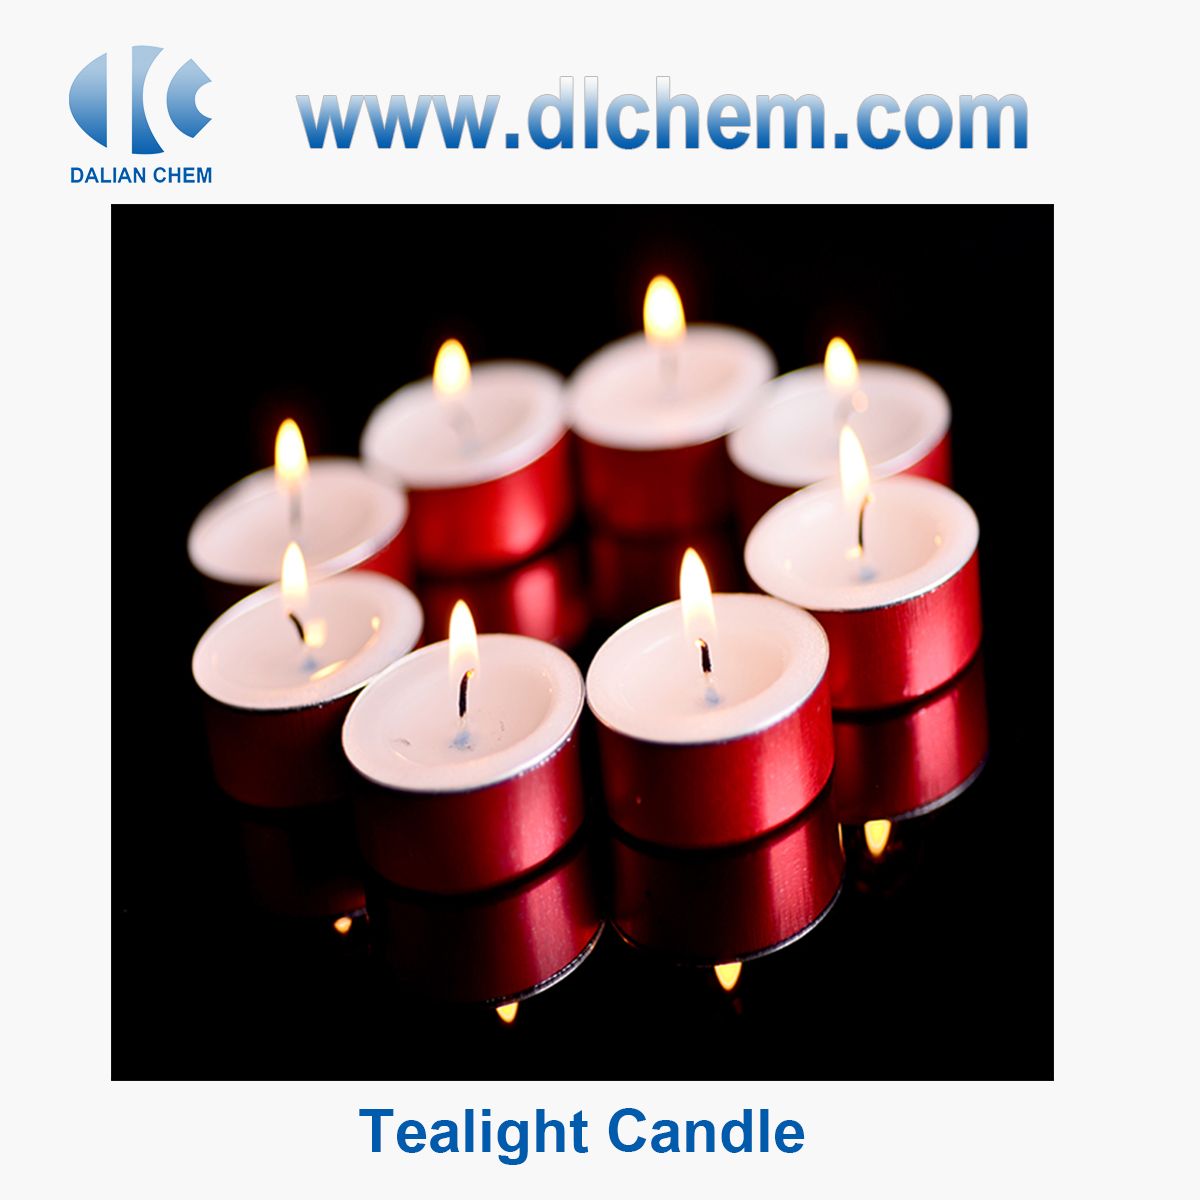 Candle CAS No.8002-74-2